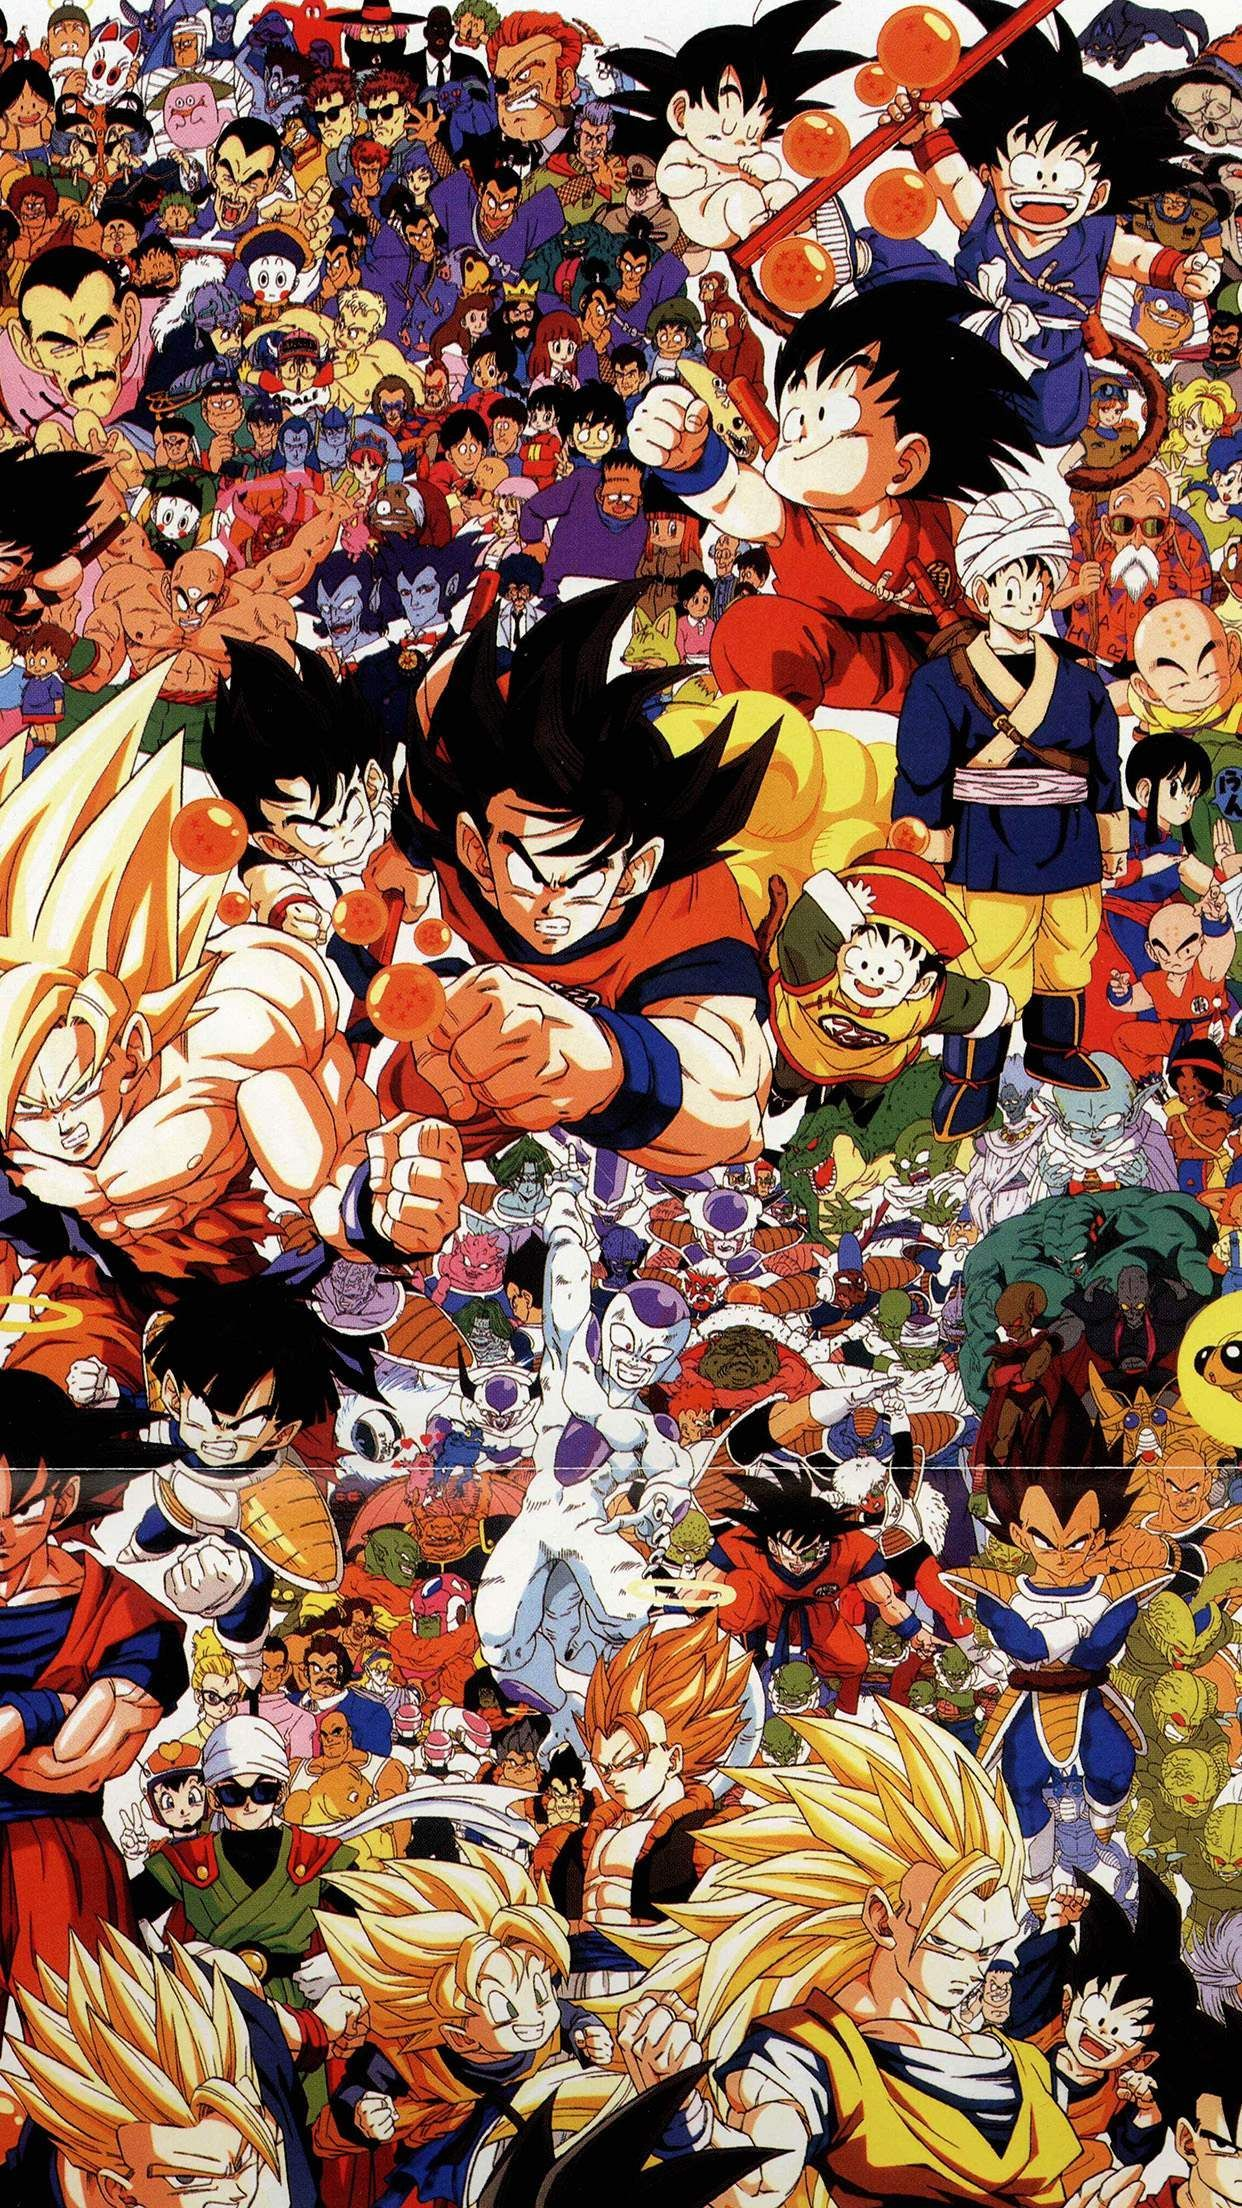 Dragonball Full Art Illust Game Anime Iphone 6 Wallpaper Dragon